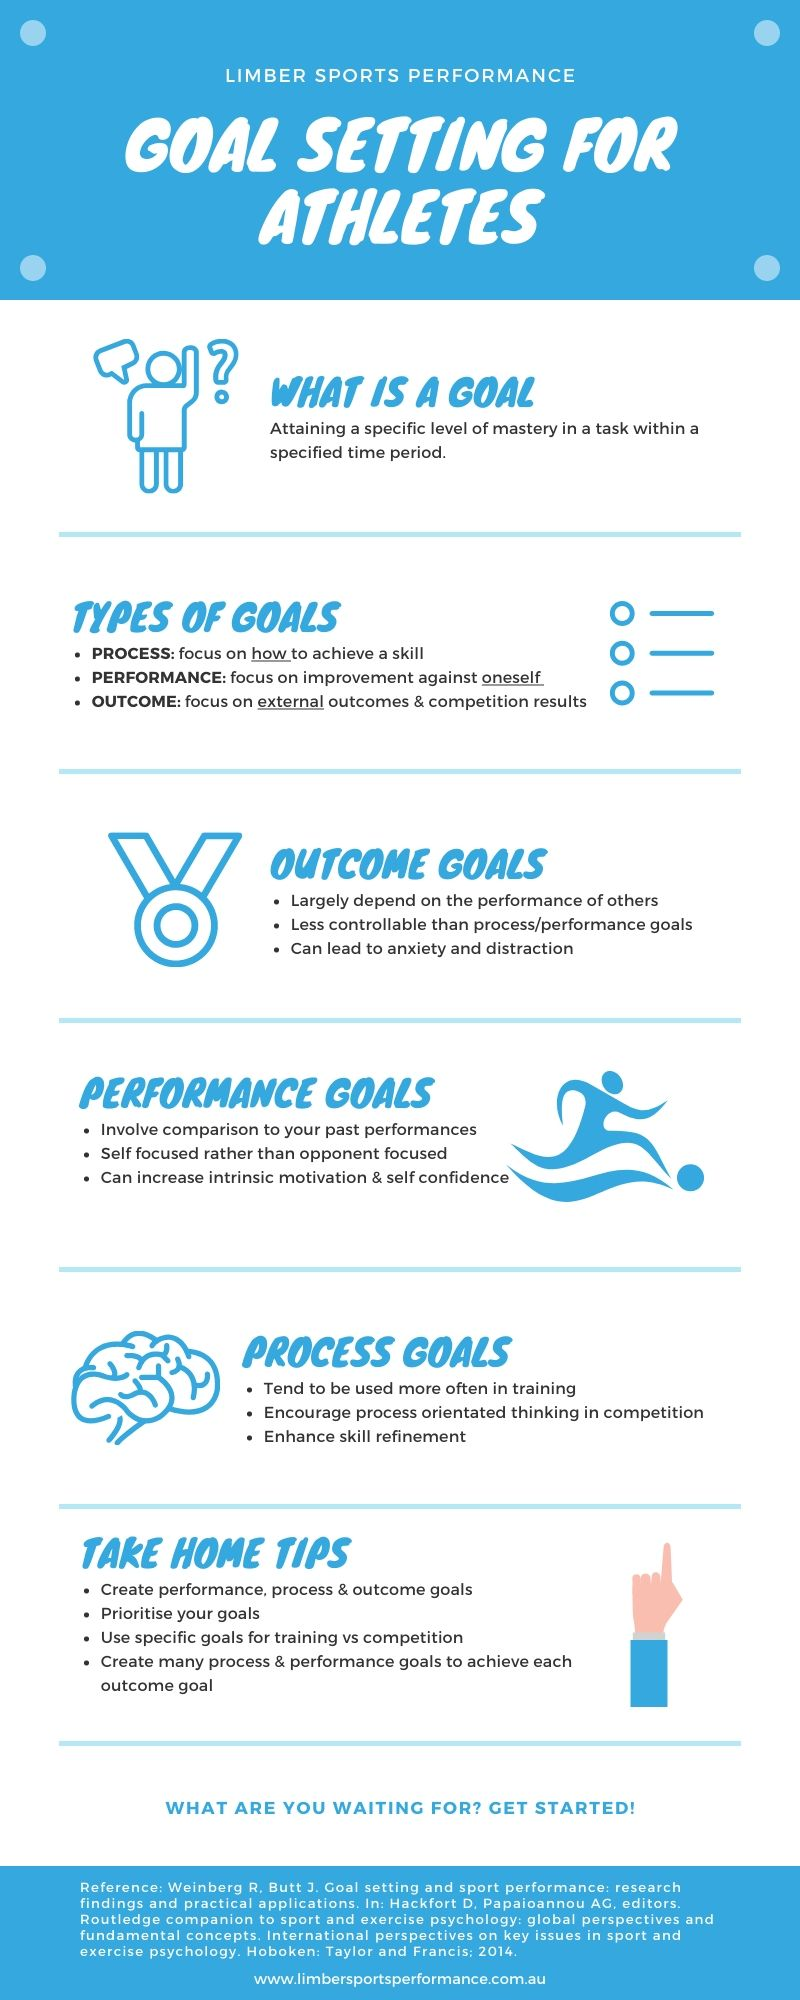 Goal Setting for Athletes Infographic